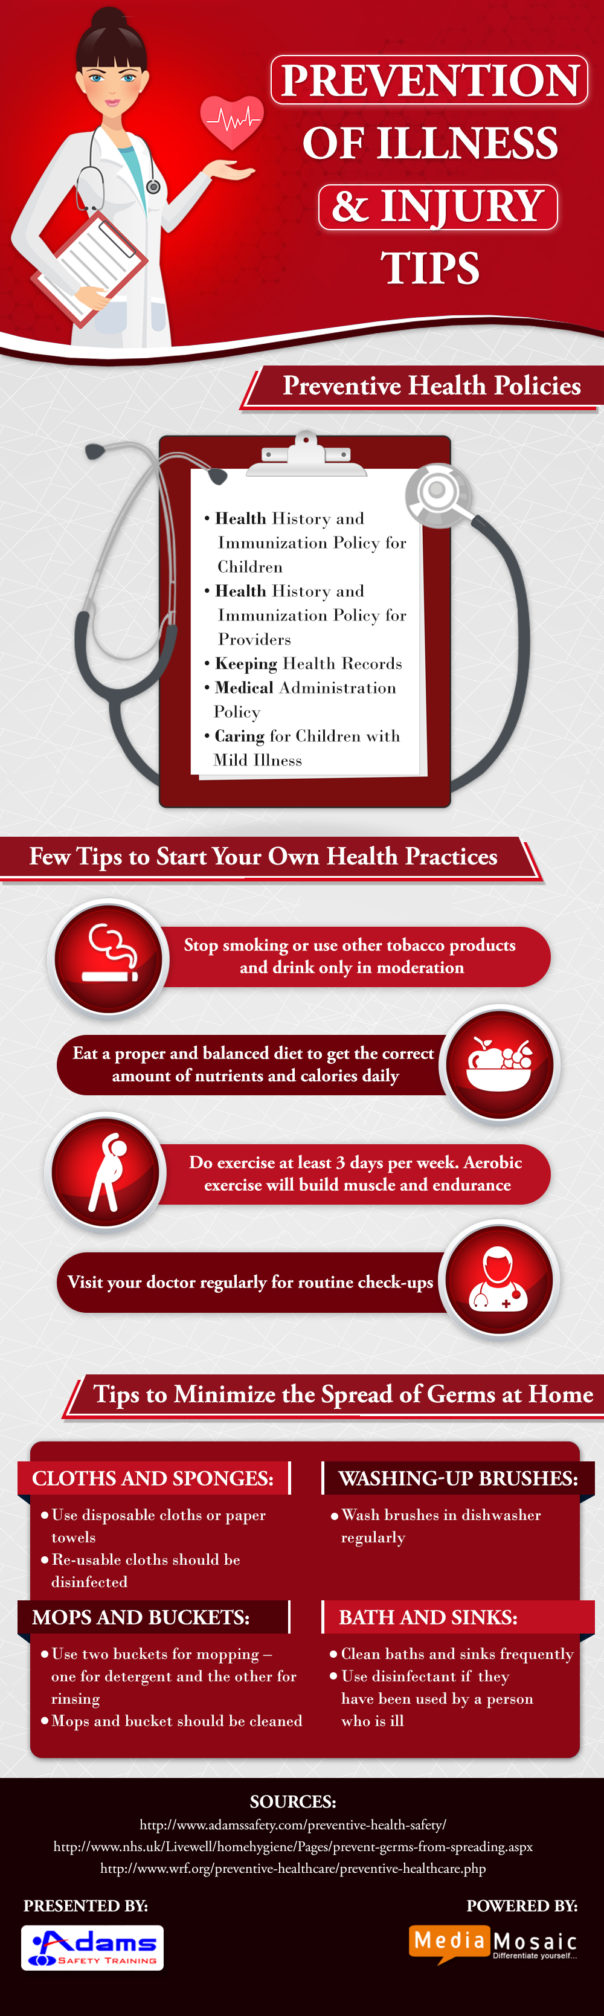 Prevention of Illness and Injury Tips - Infographic